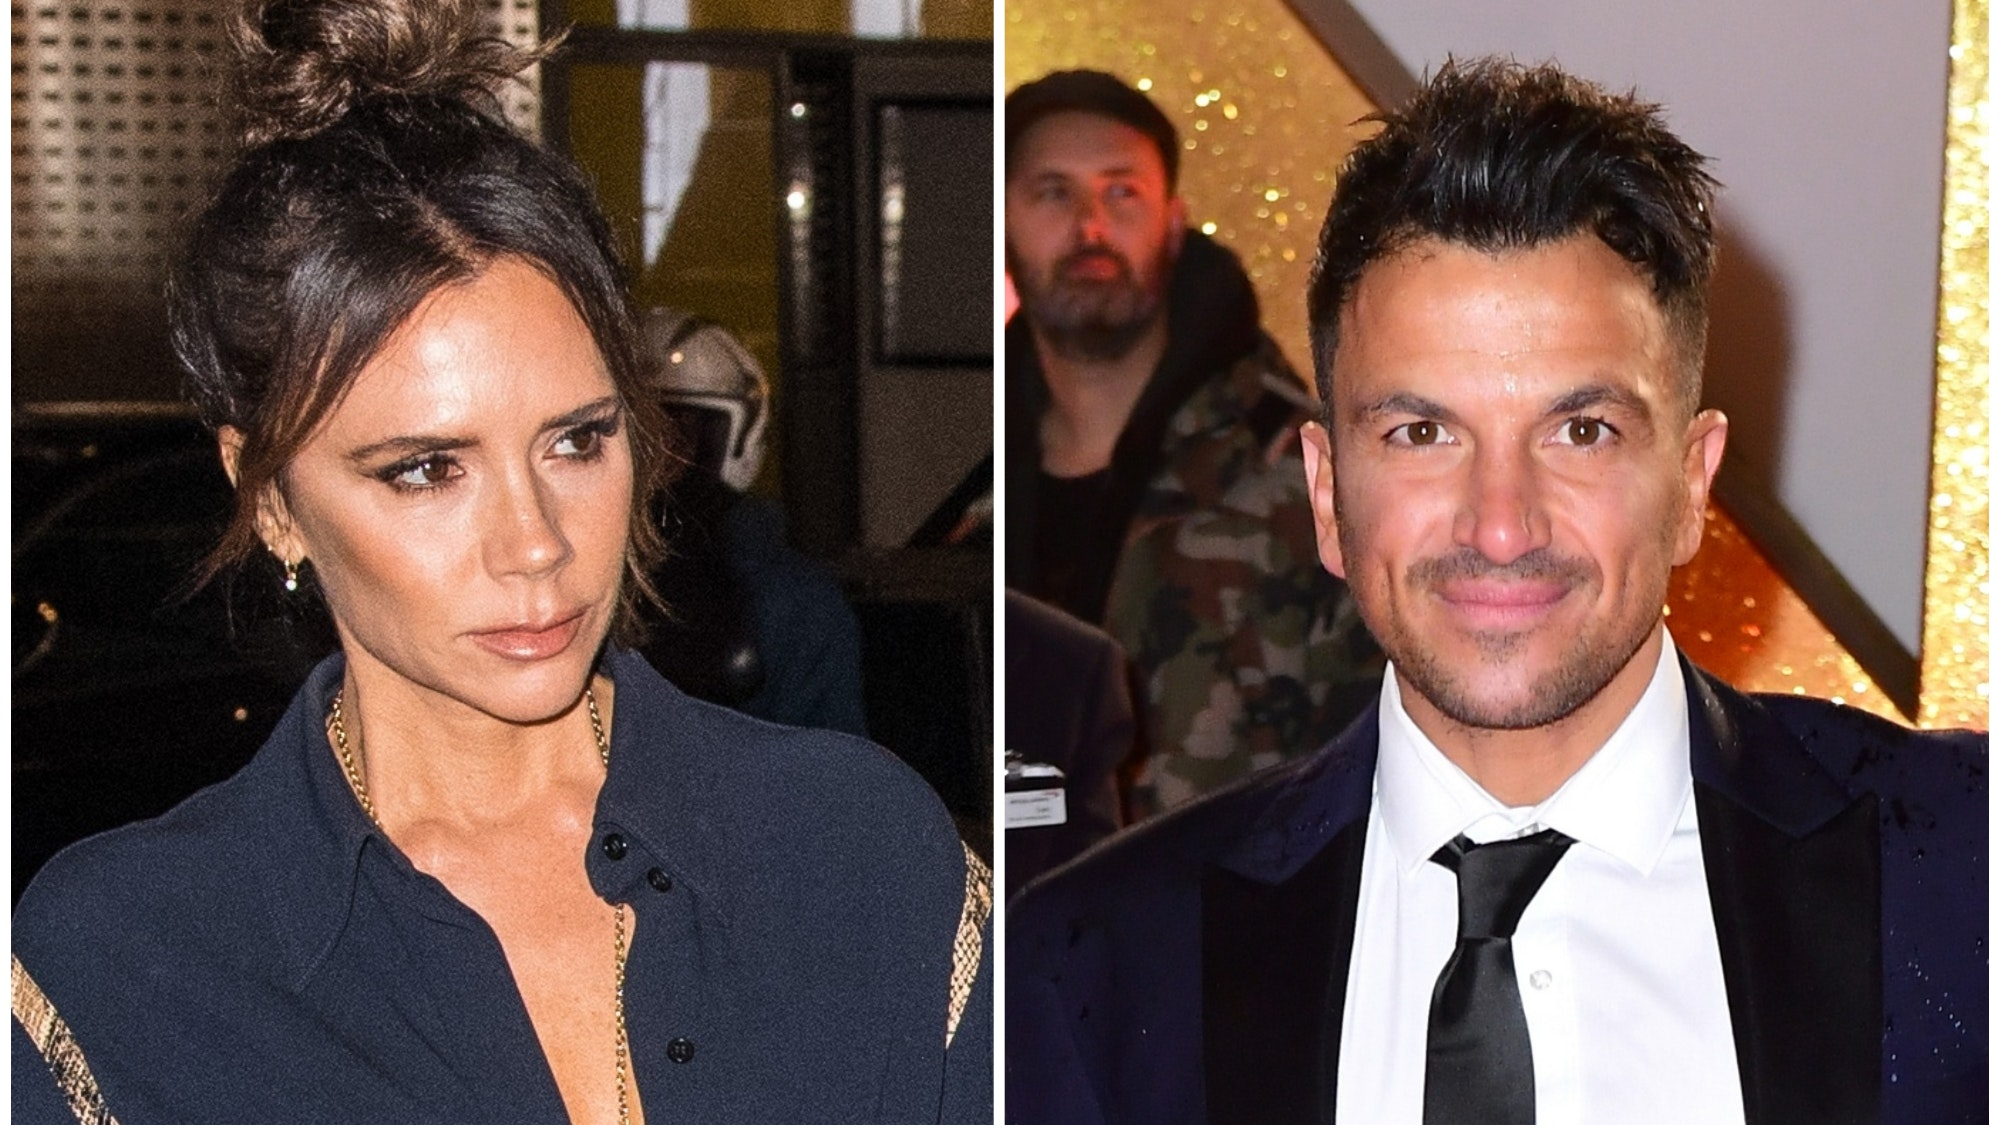 Peter Andre And Posh Spice Era Victoria Beckham Unrecognisable In Old Picture Bt